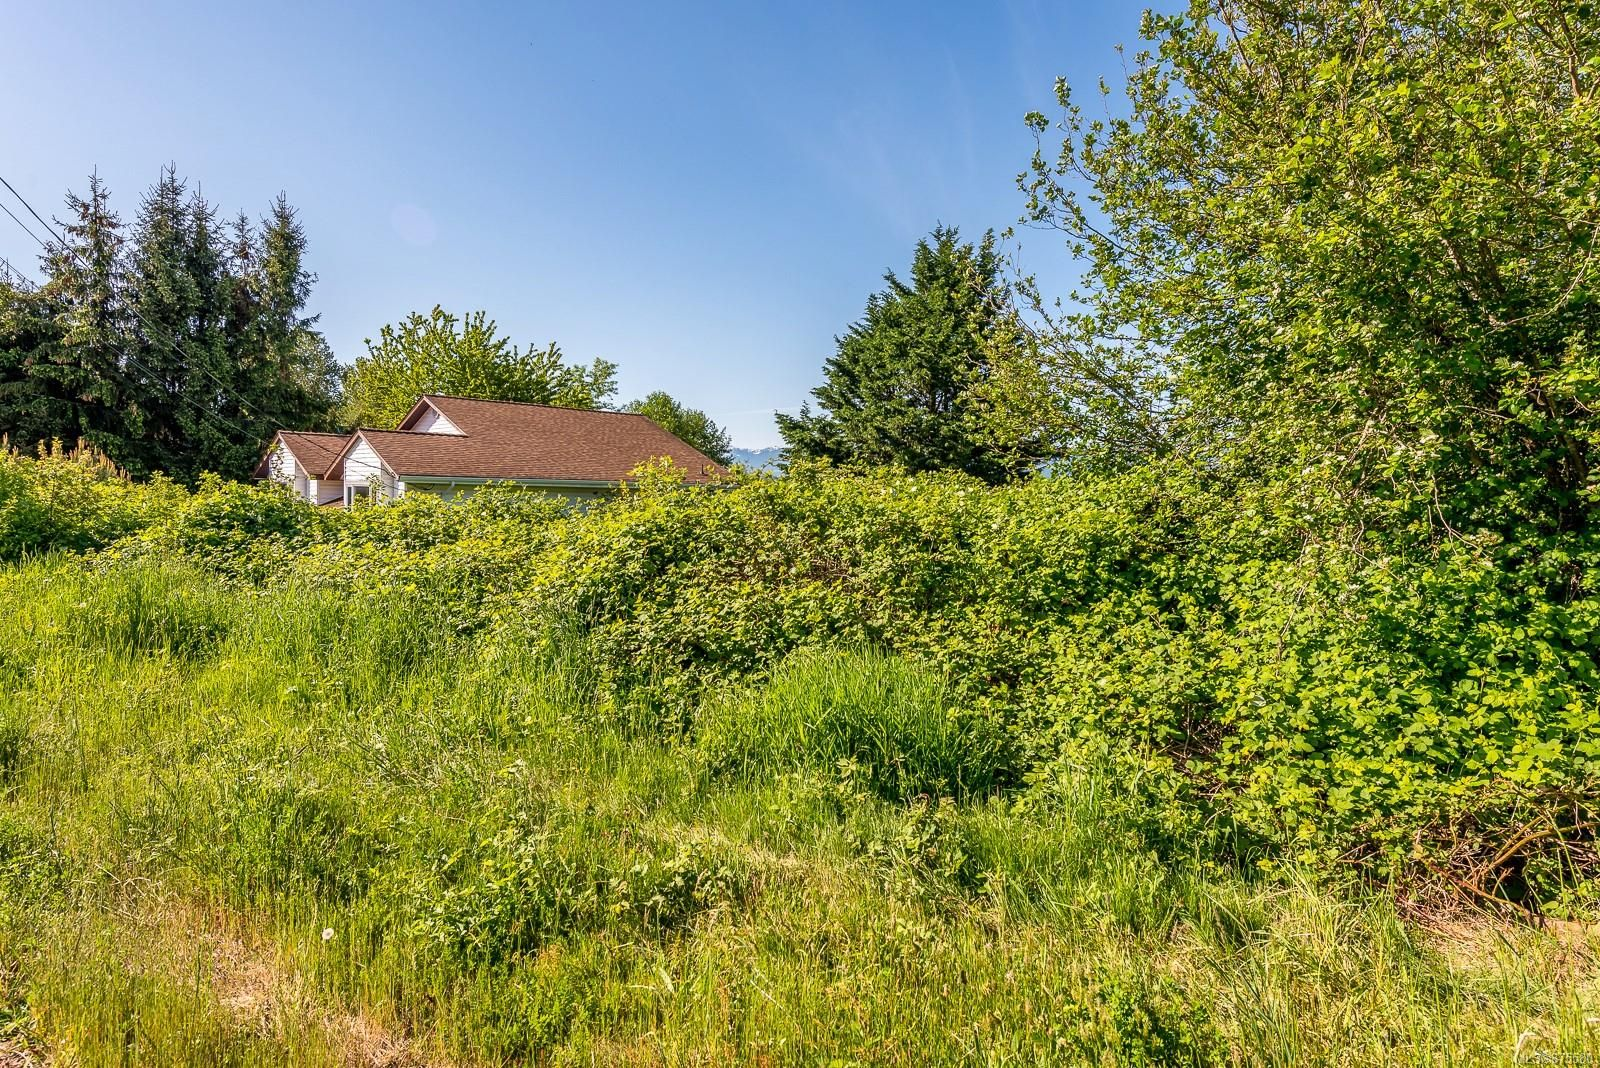 Main Photo: 325 Back Rd in : CV Courtenay East Land for sale (Comox Valley)  : MLS®# 875580